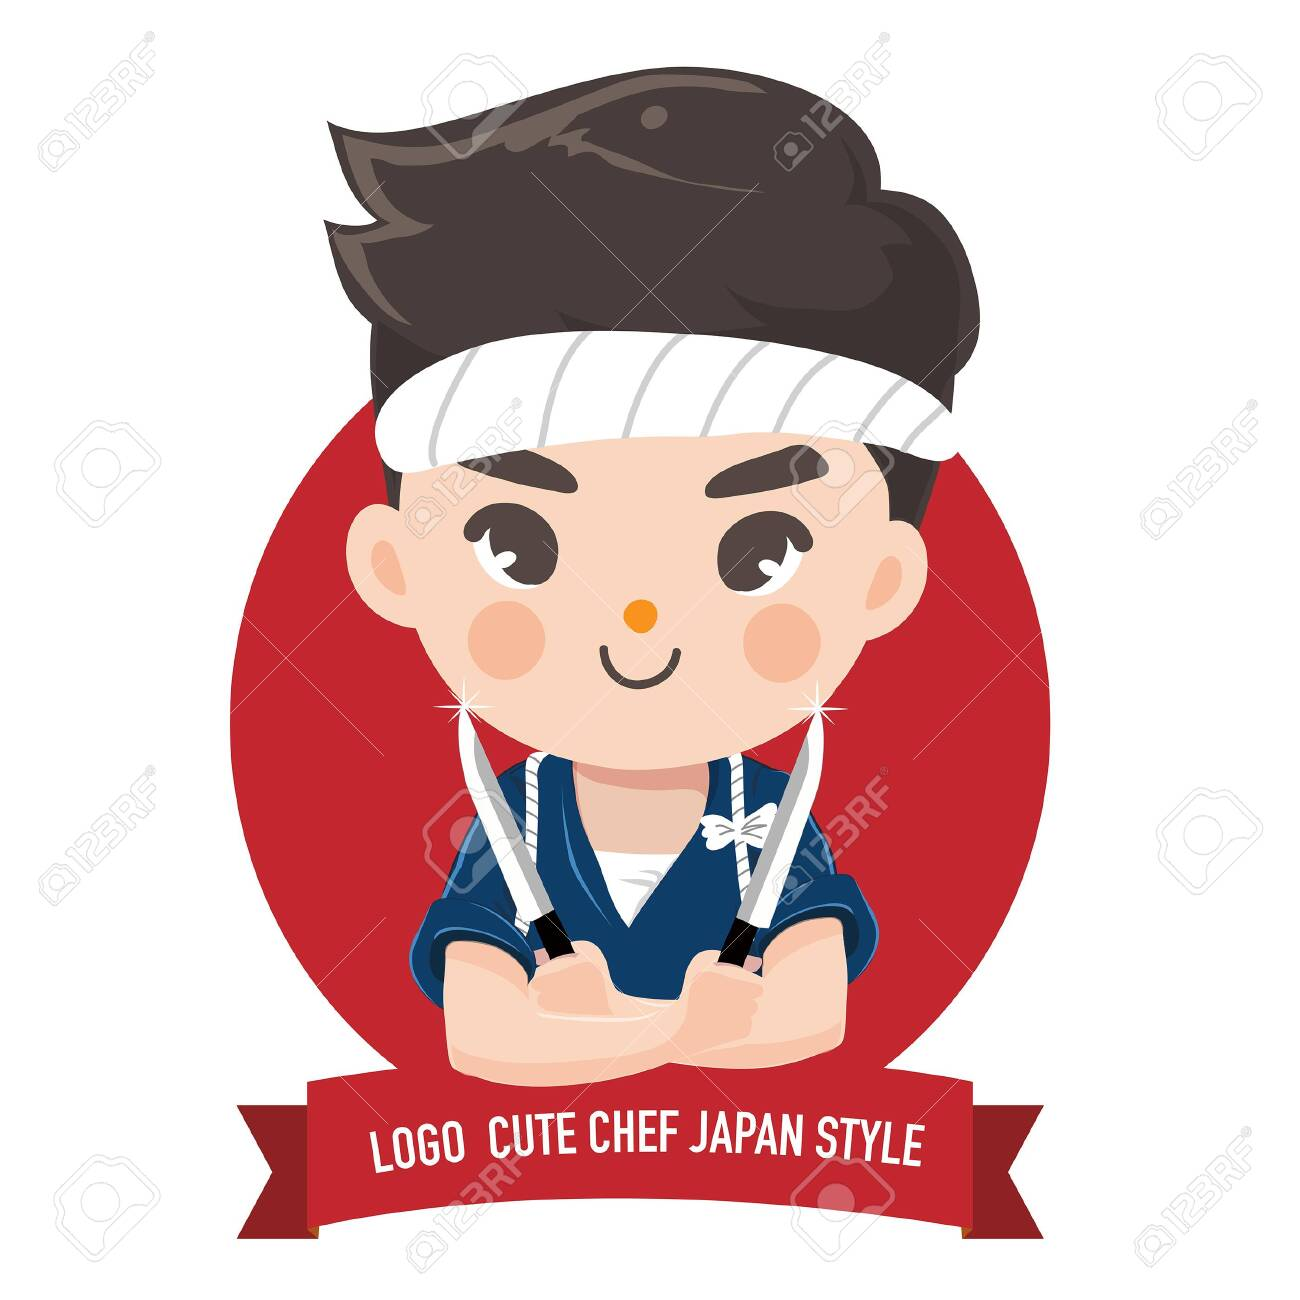 The little japan boy chef's logo is happy,tasty and confident smile. - 123529030